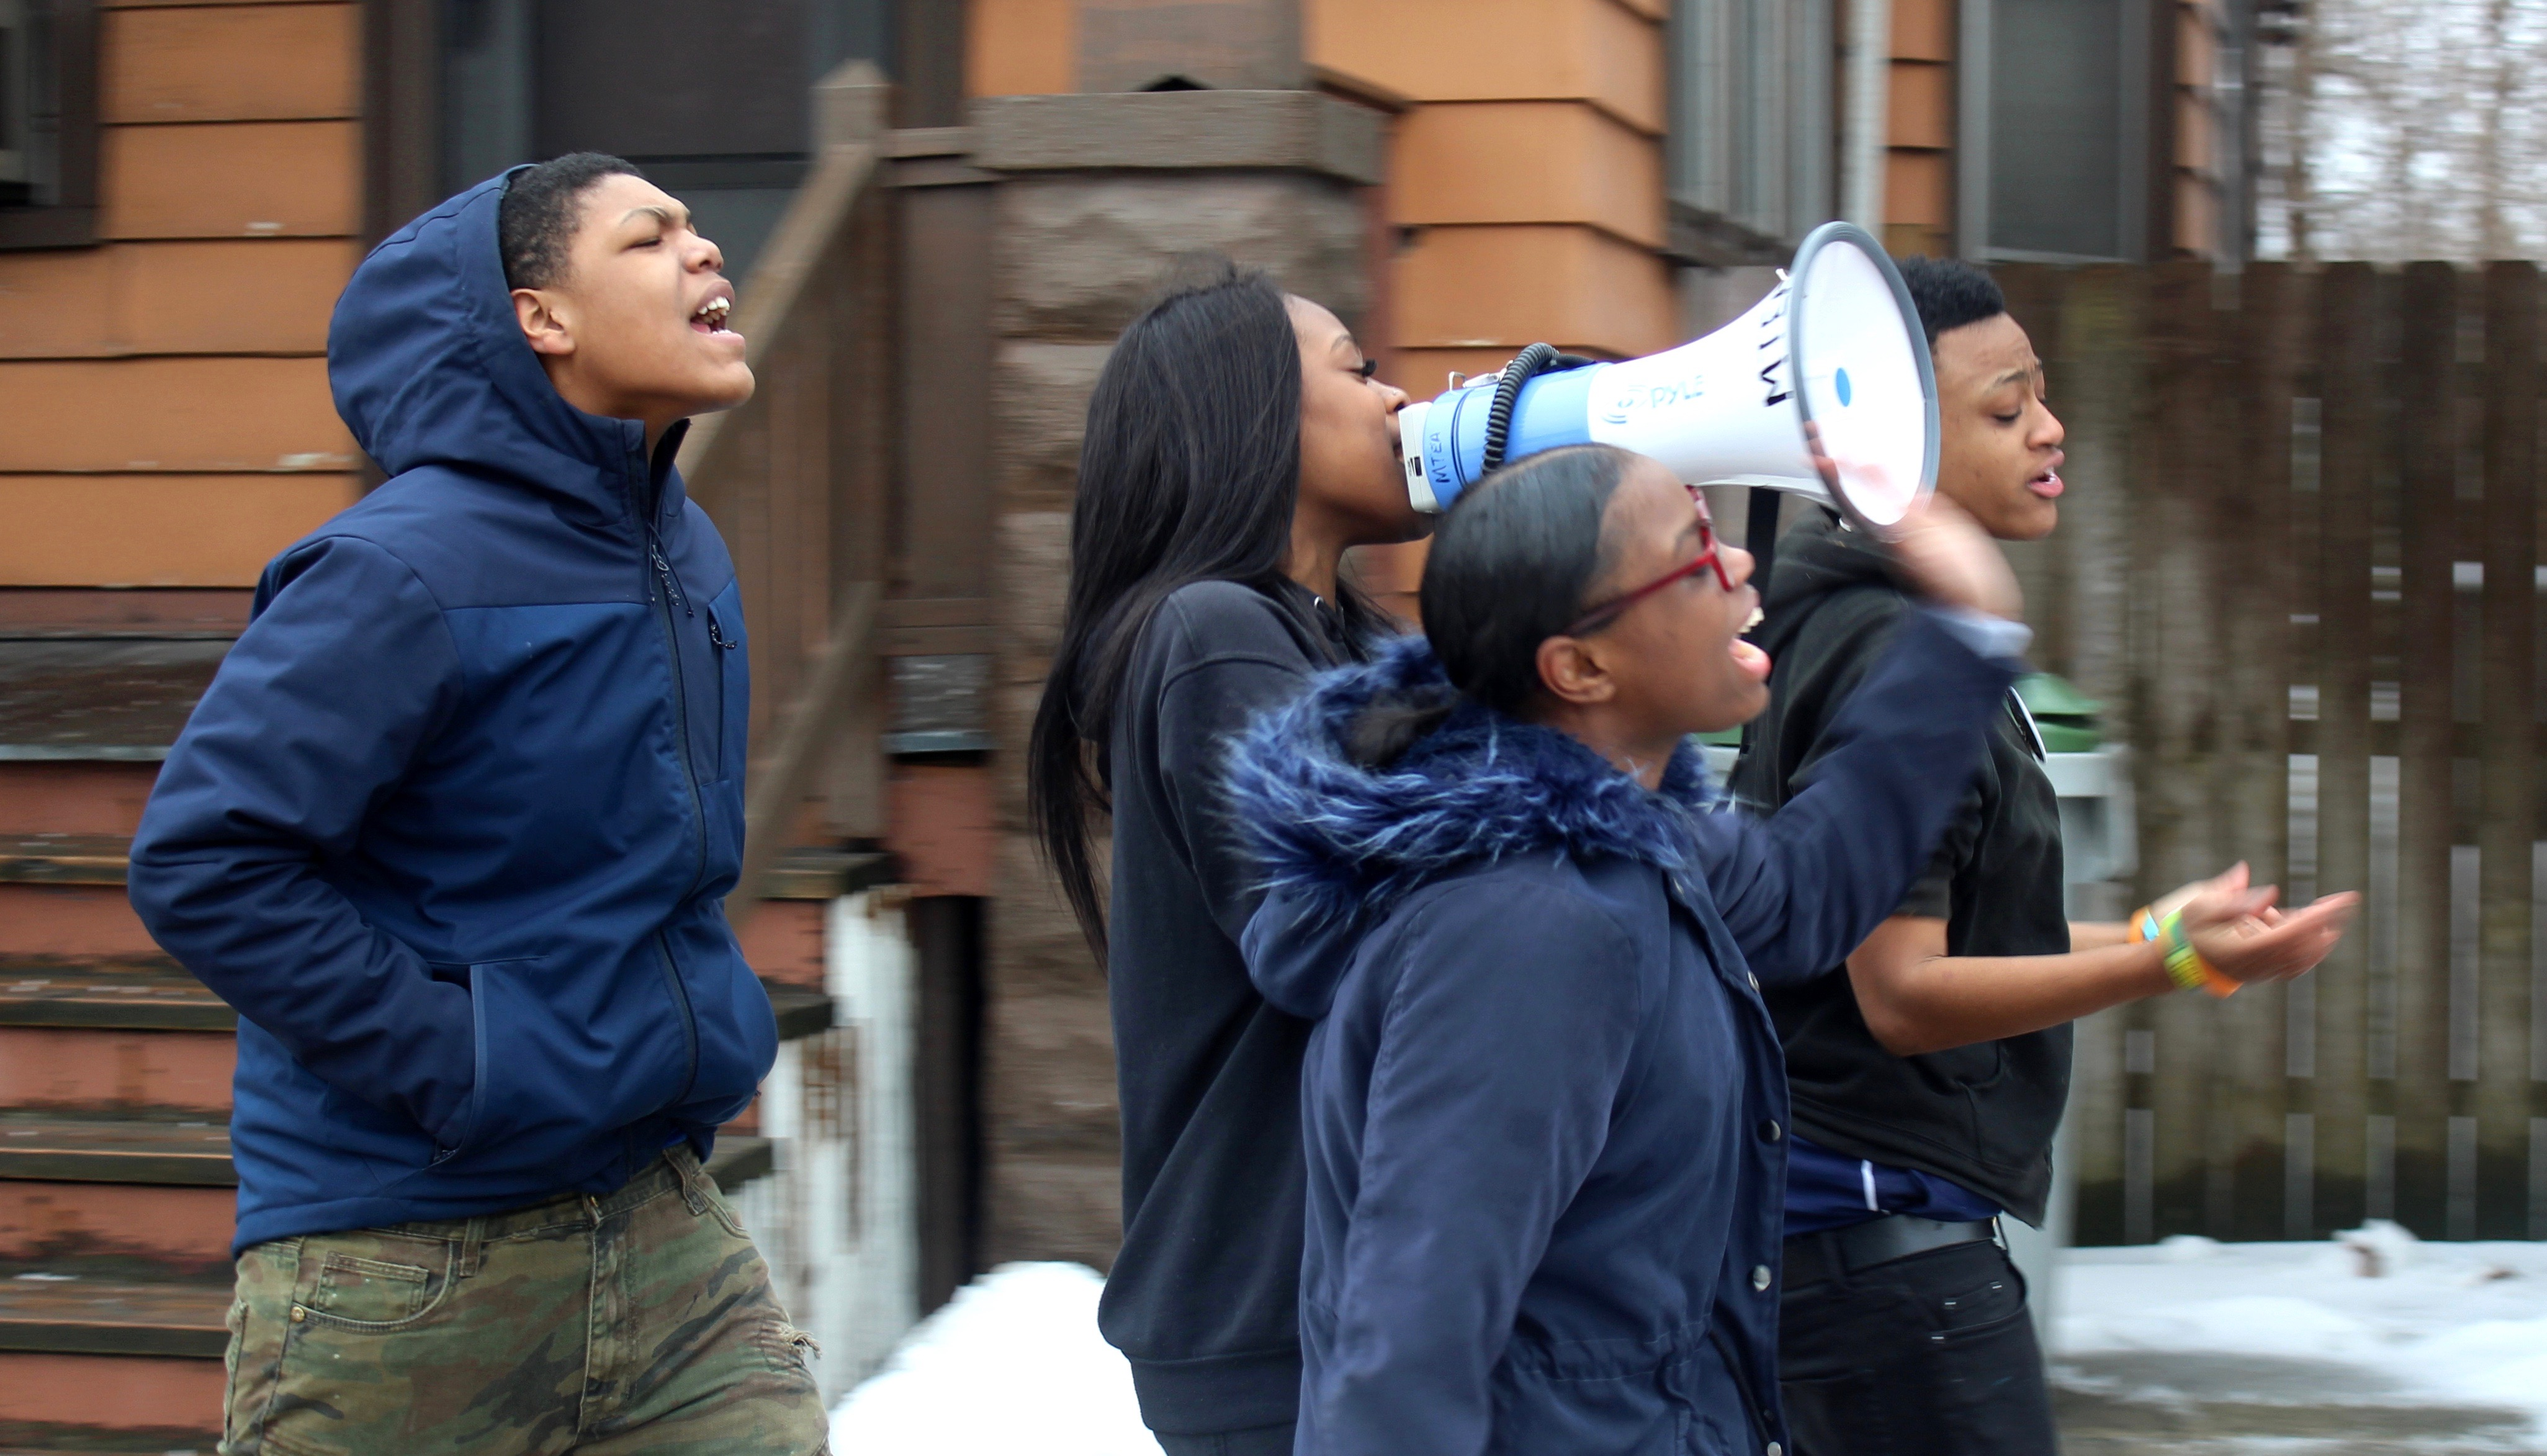 Jashanti Johnson leads the march from the front, shouting chants into the megaphone. Photo by Allison Dikanovic/NNS.